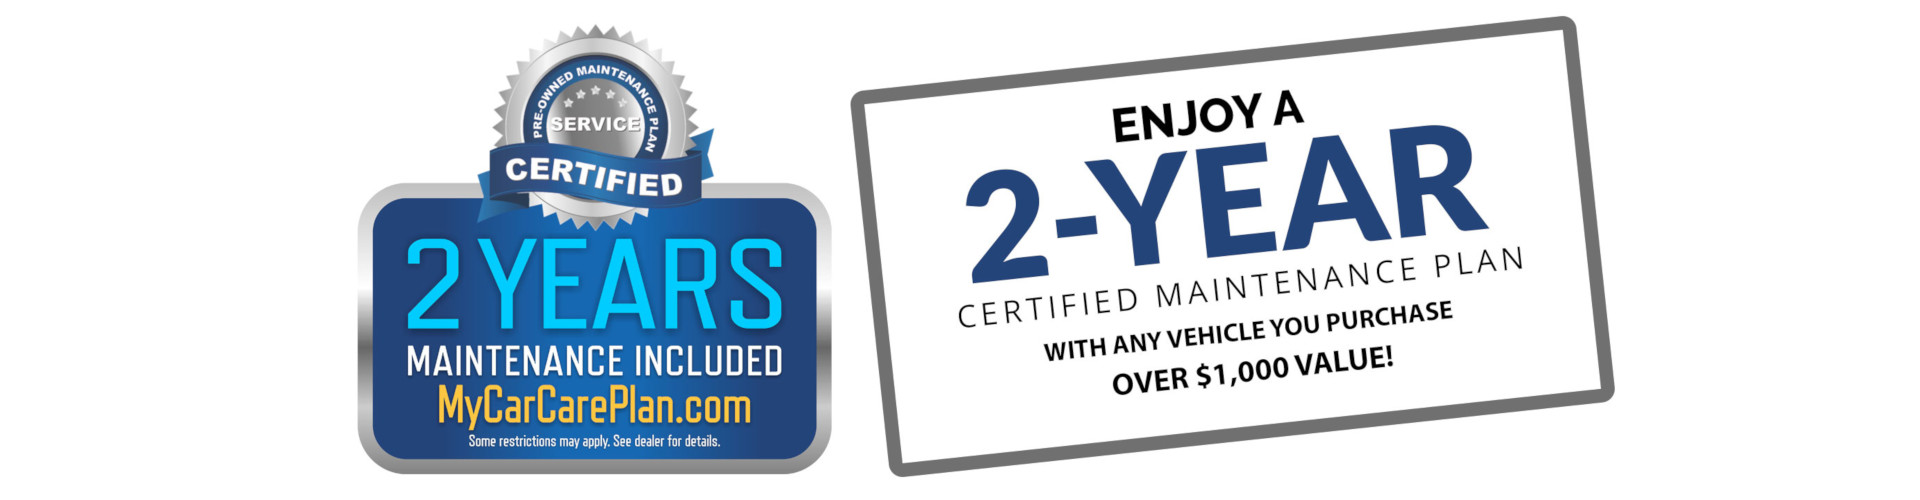 2 Year Warranty offered on all vehicles